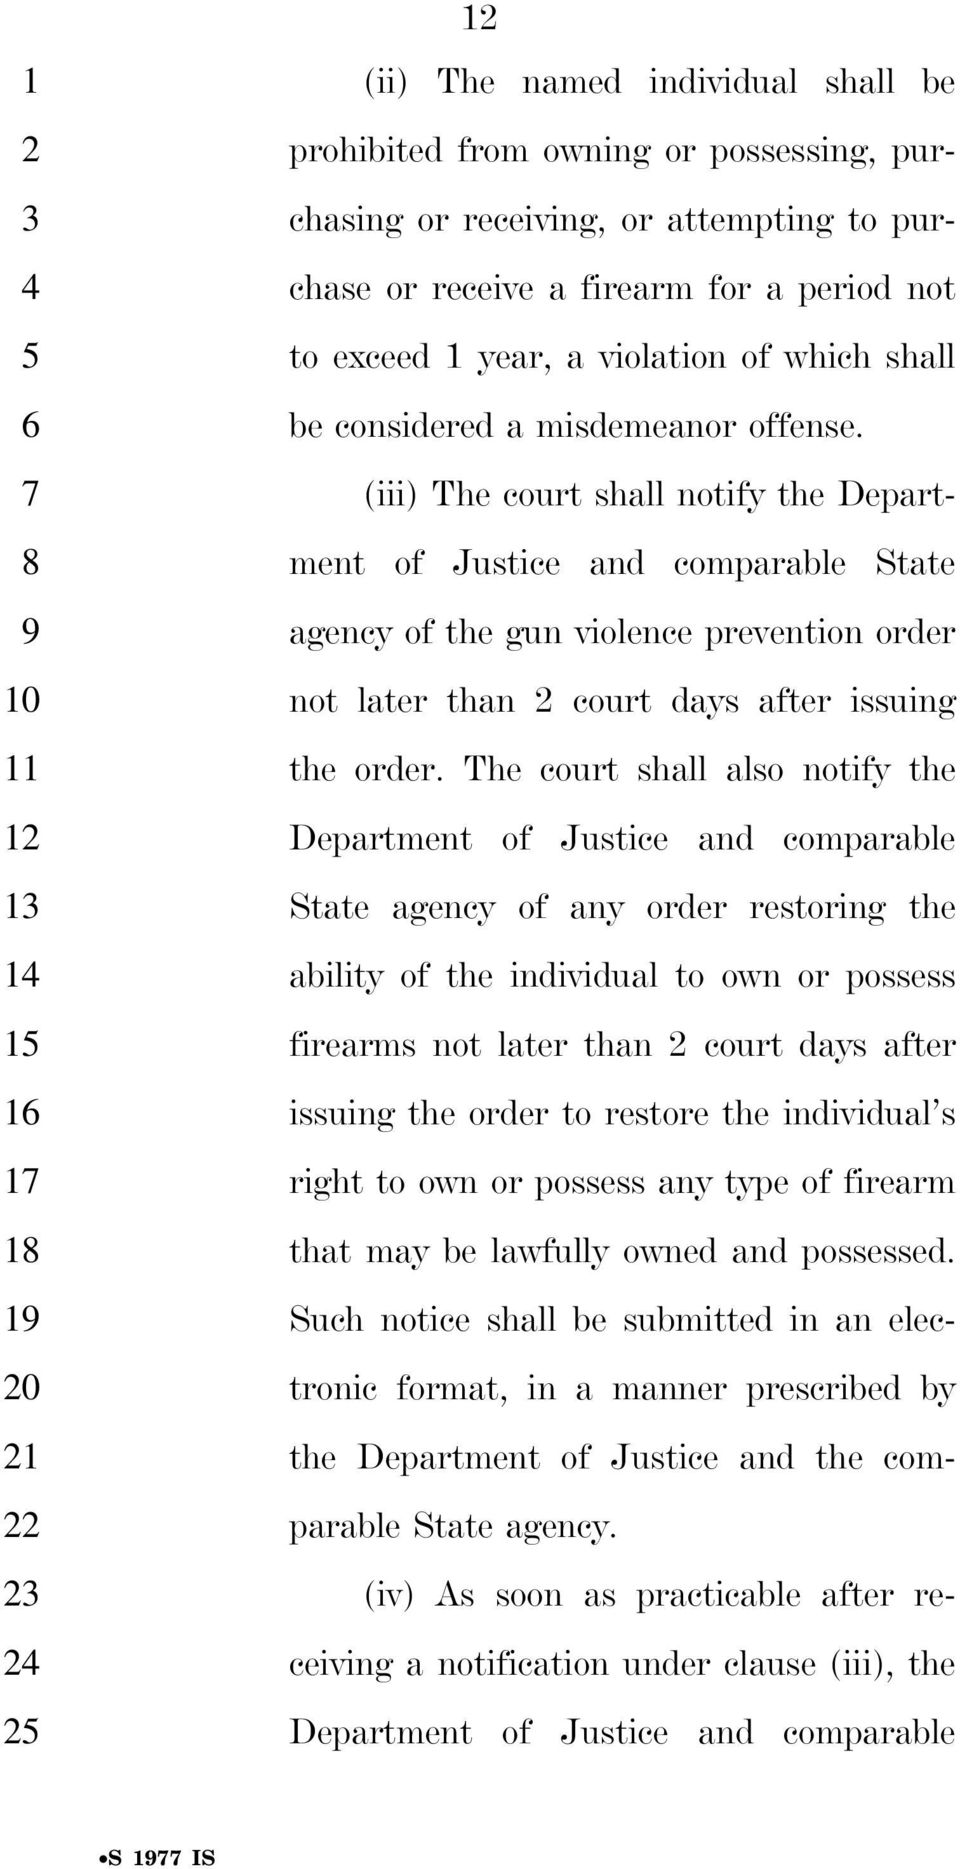 (iii) The court shall notify the Depart- ment of Justice and comparable State agency of the gun violence prevention order not later than 2 court days after issuing the order.